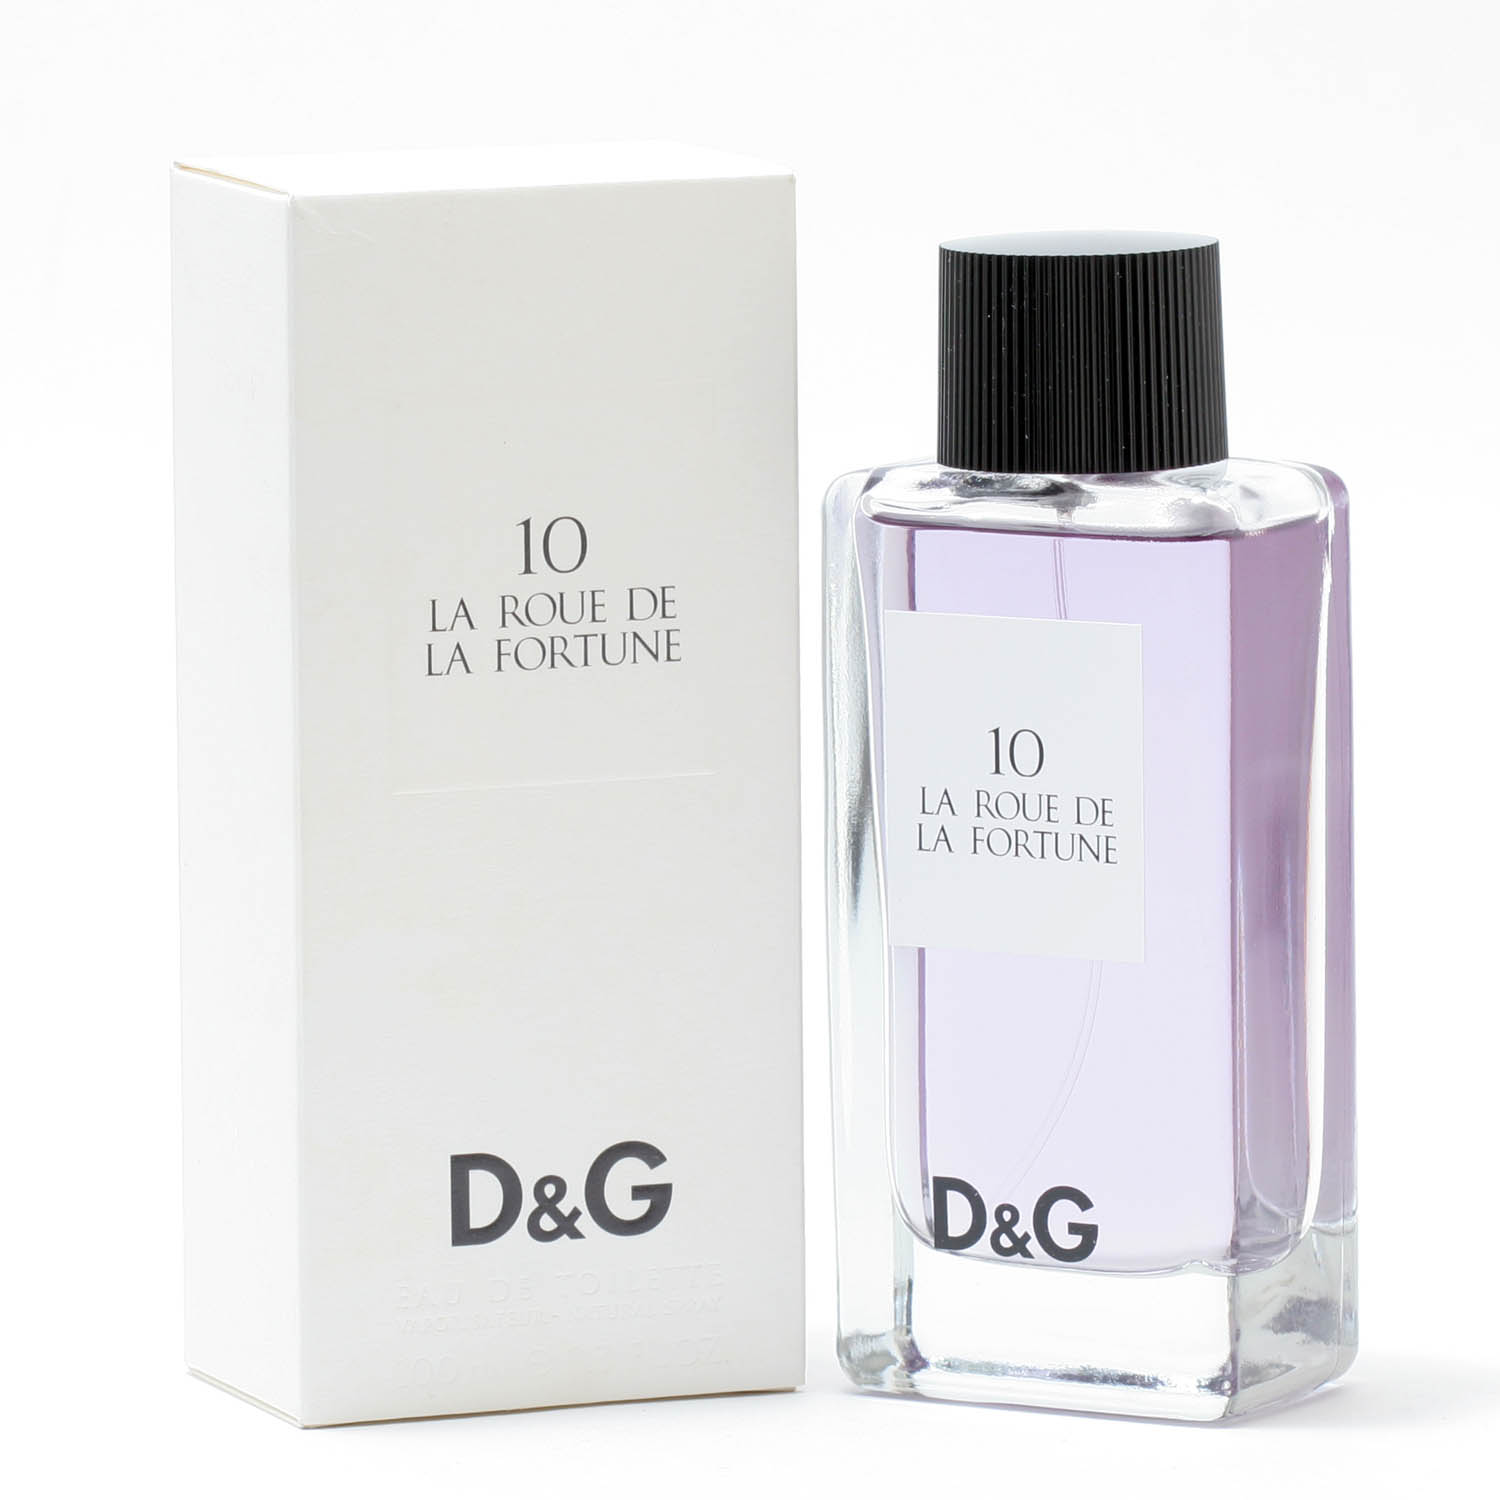 D&G10 LA ROUE DE LA FORTUNELADIES - EDT SPRAY 3.3 OZ